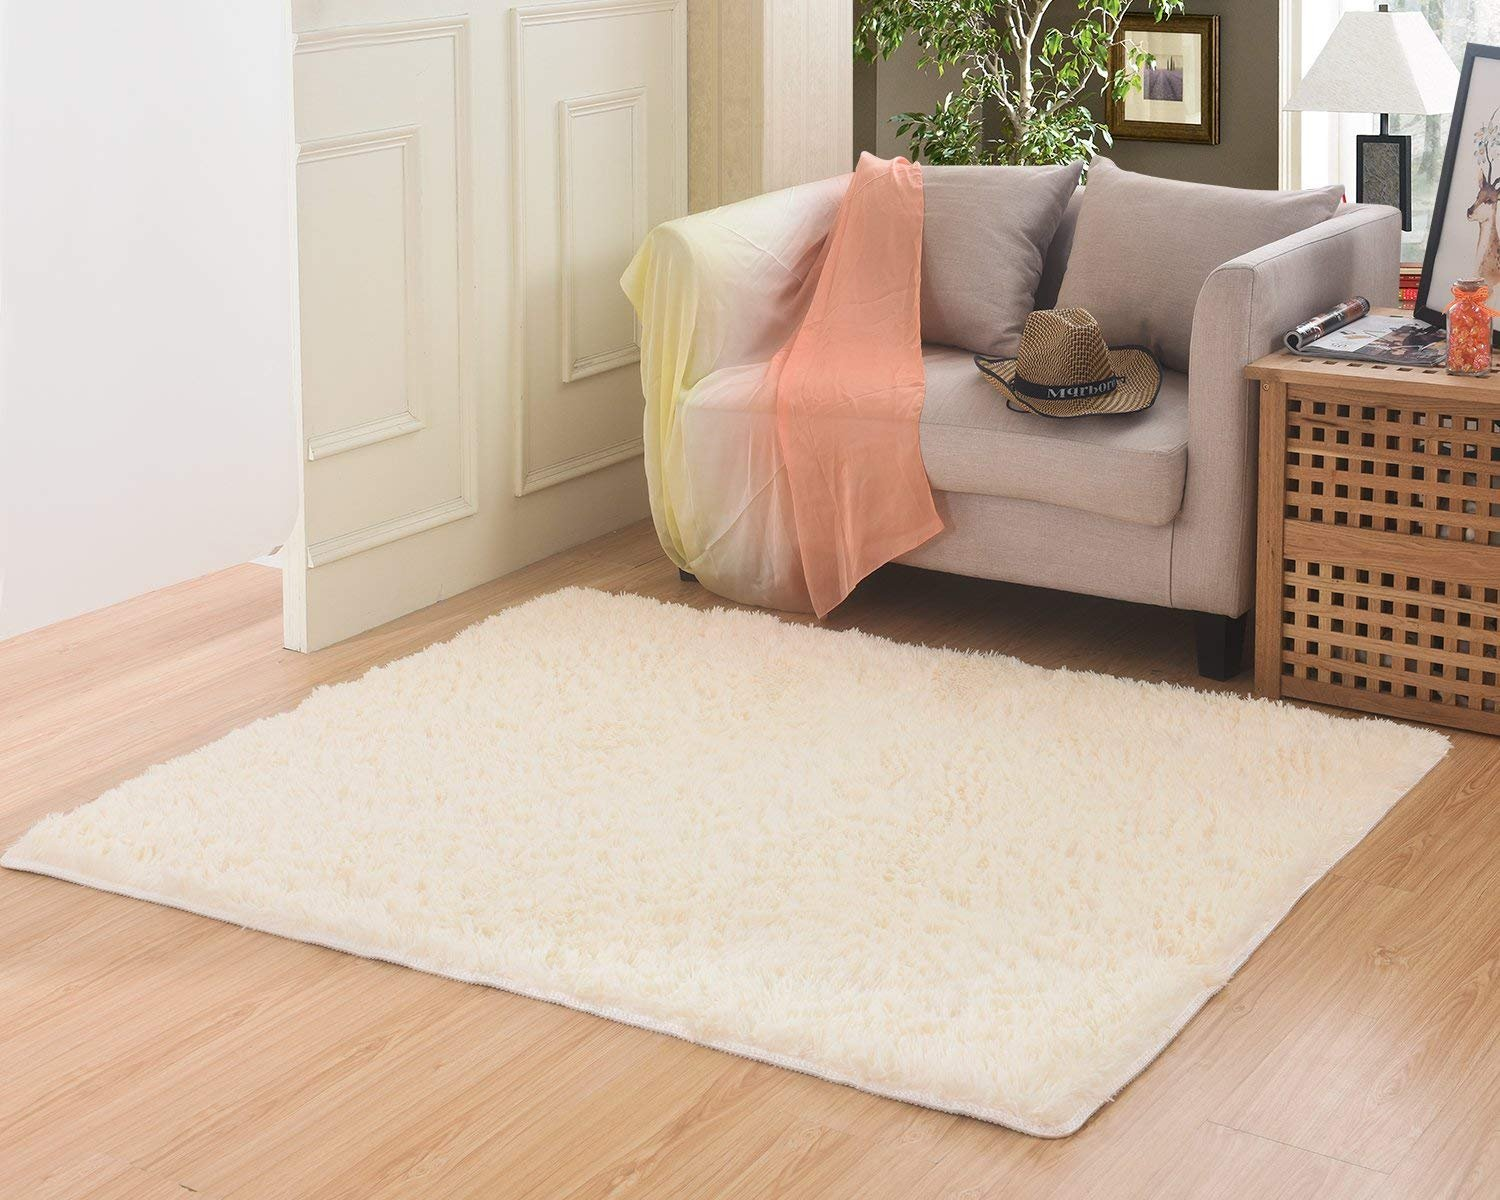 MBIGM Living Room Bedroom Rugs Ultra Soft Modern Area Rugs Thick Shaggy Play Nursery Rug Non-Slip Carpet Pad Living Room Bedroom 4 Feet 5.2 Feet, Beige